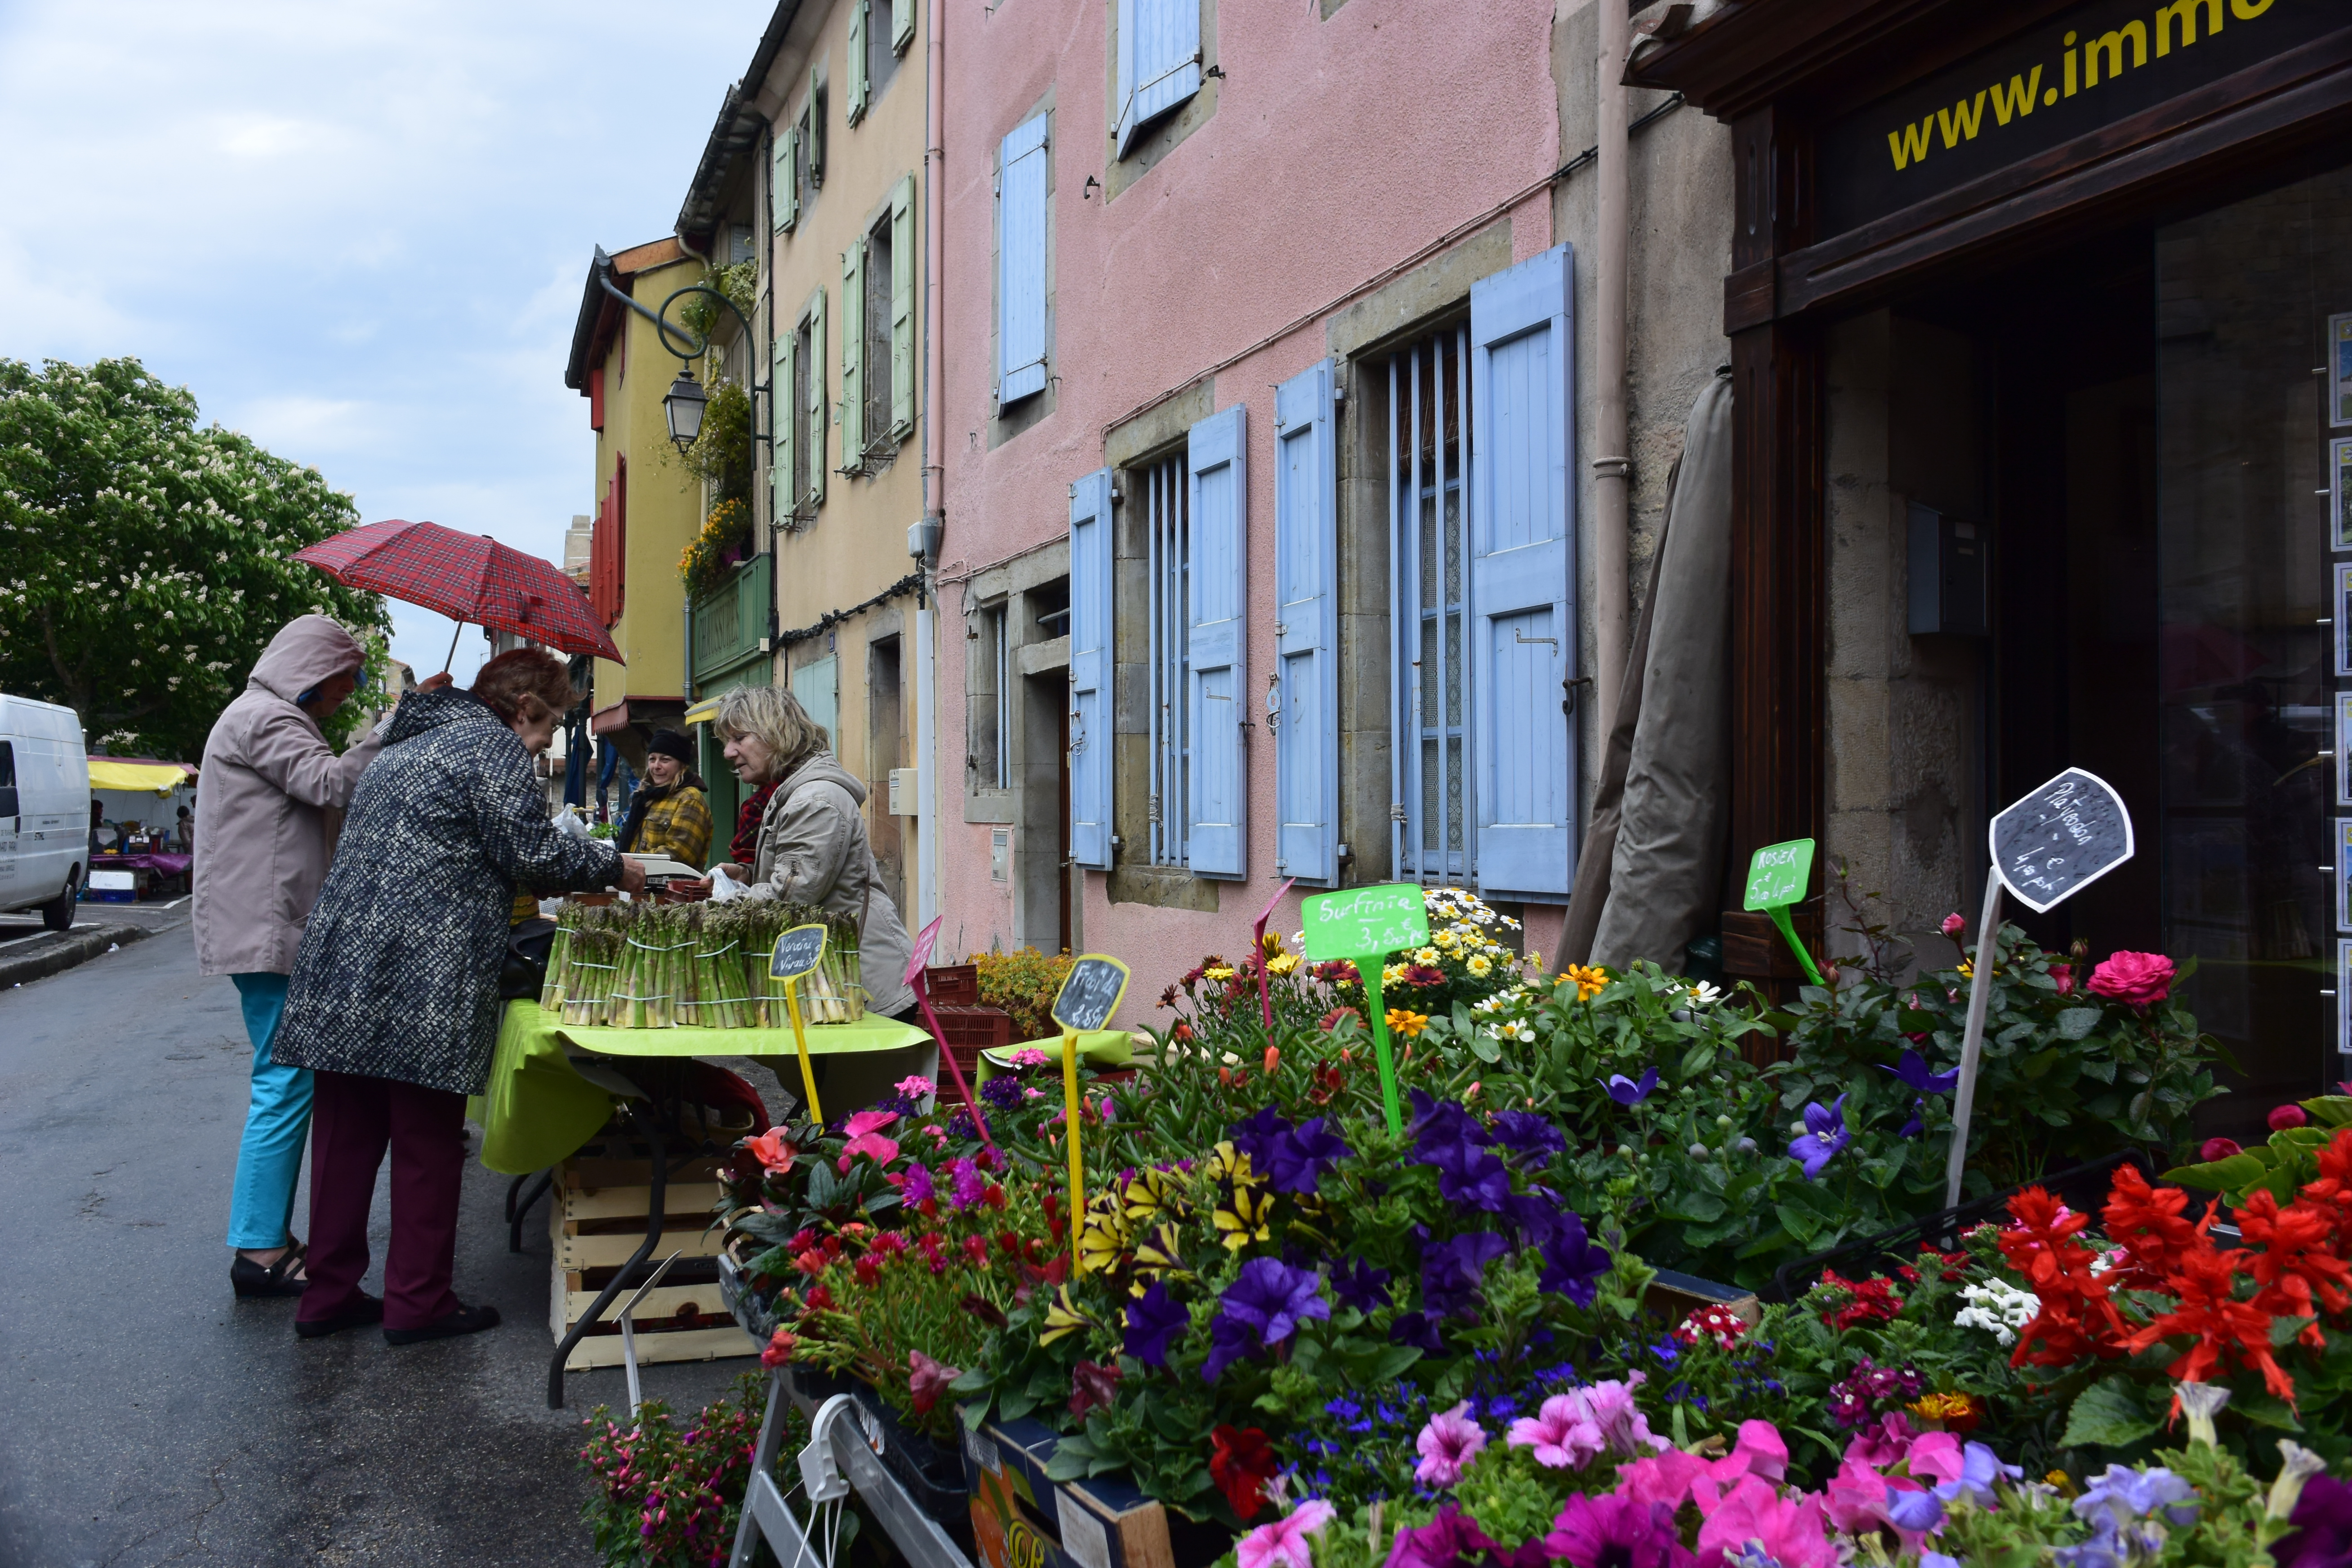 Market Day in Mirepoix, France